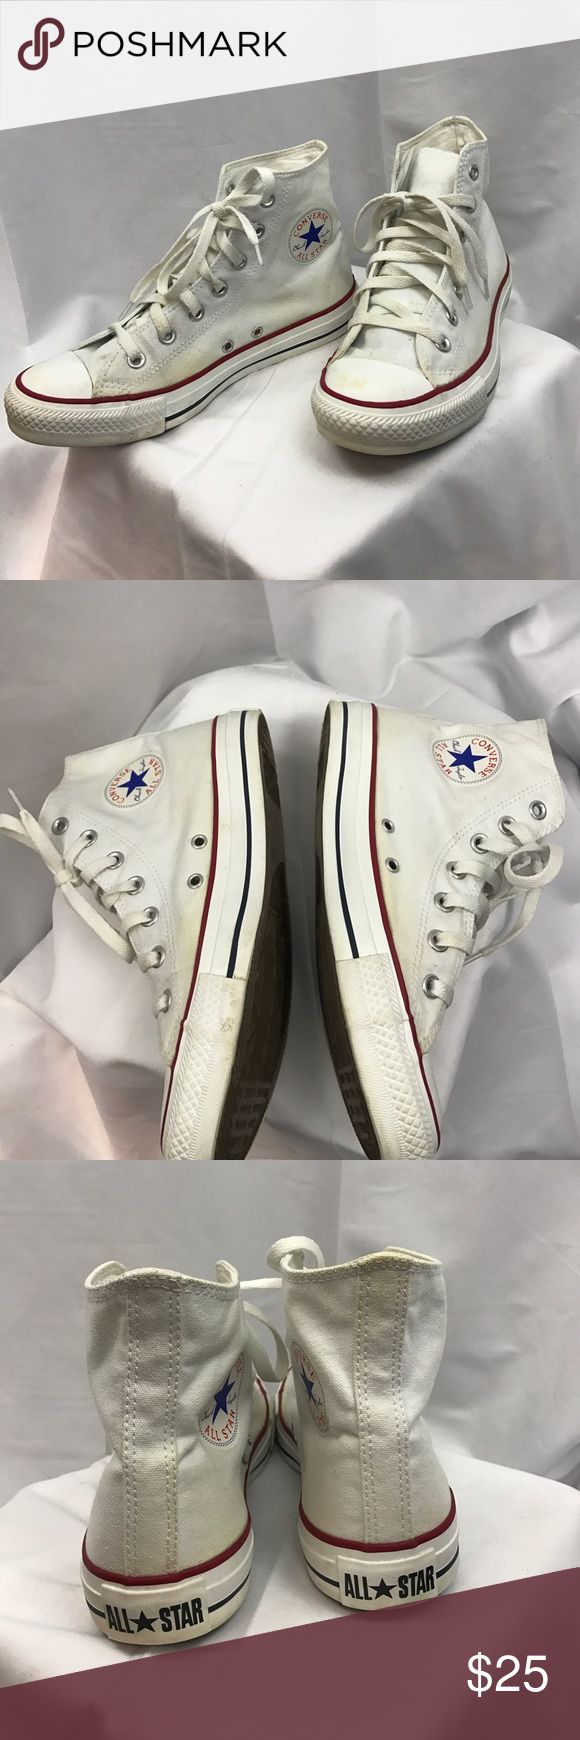 Converse All Star sz8 white high top sneakers Good used condition Converse All Star sz8 white high top sneakers...white canvas shows some yellowing and ties have some scuffs...see Picts...no odors or wear to interior... Converse Shoes Sneakers